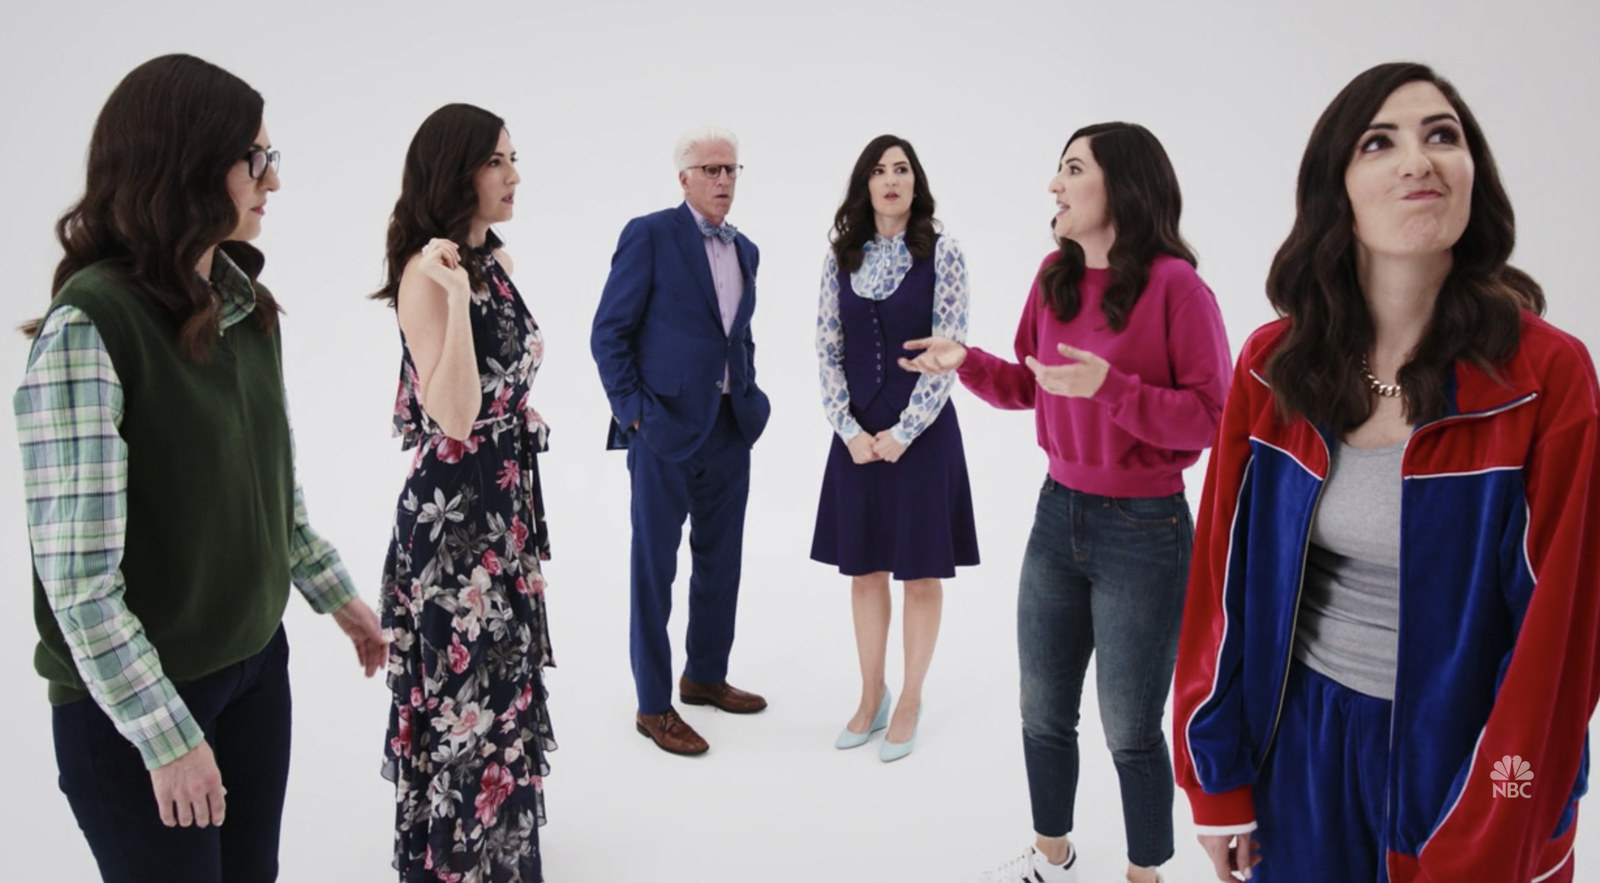 Ted Danson gave D'Arcy advice during different bits she had to do of Jason, Tahani, Eleanor, and Chidi.